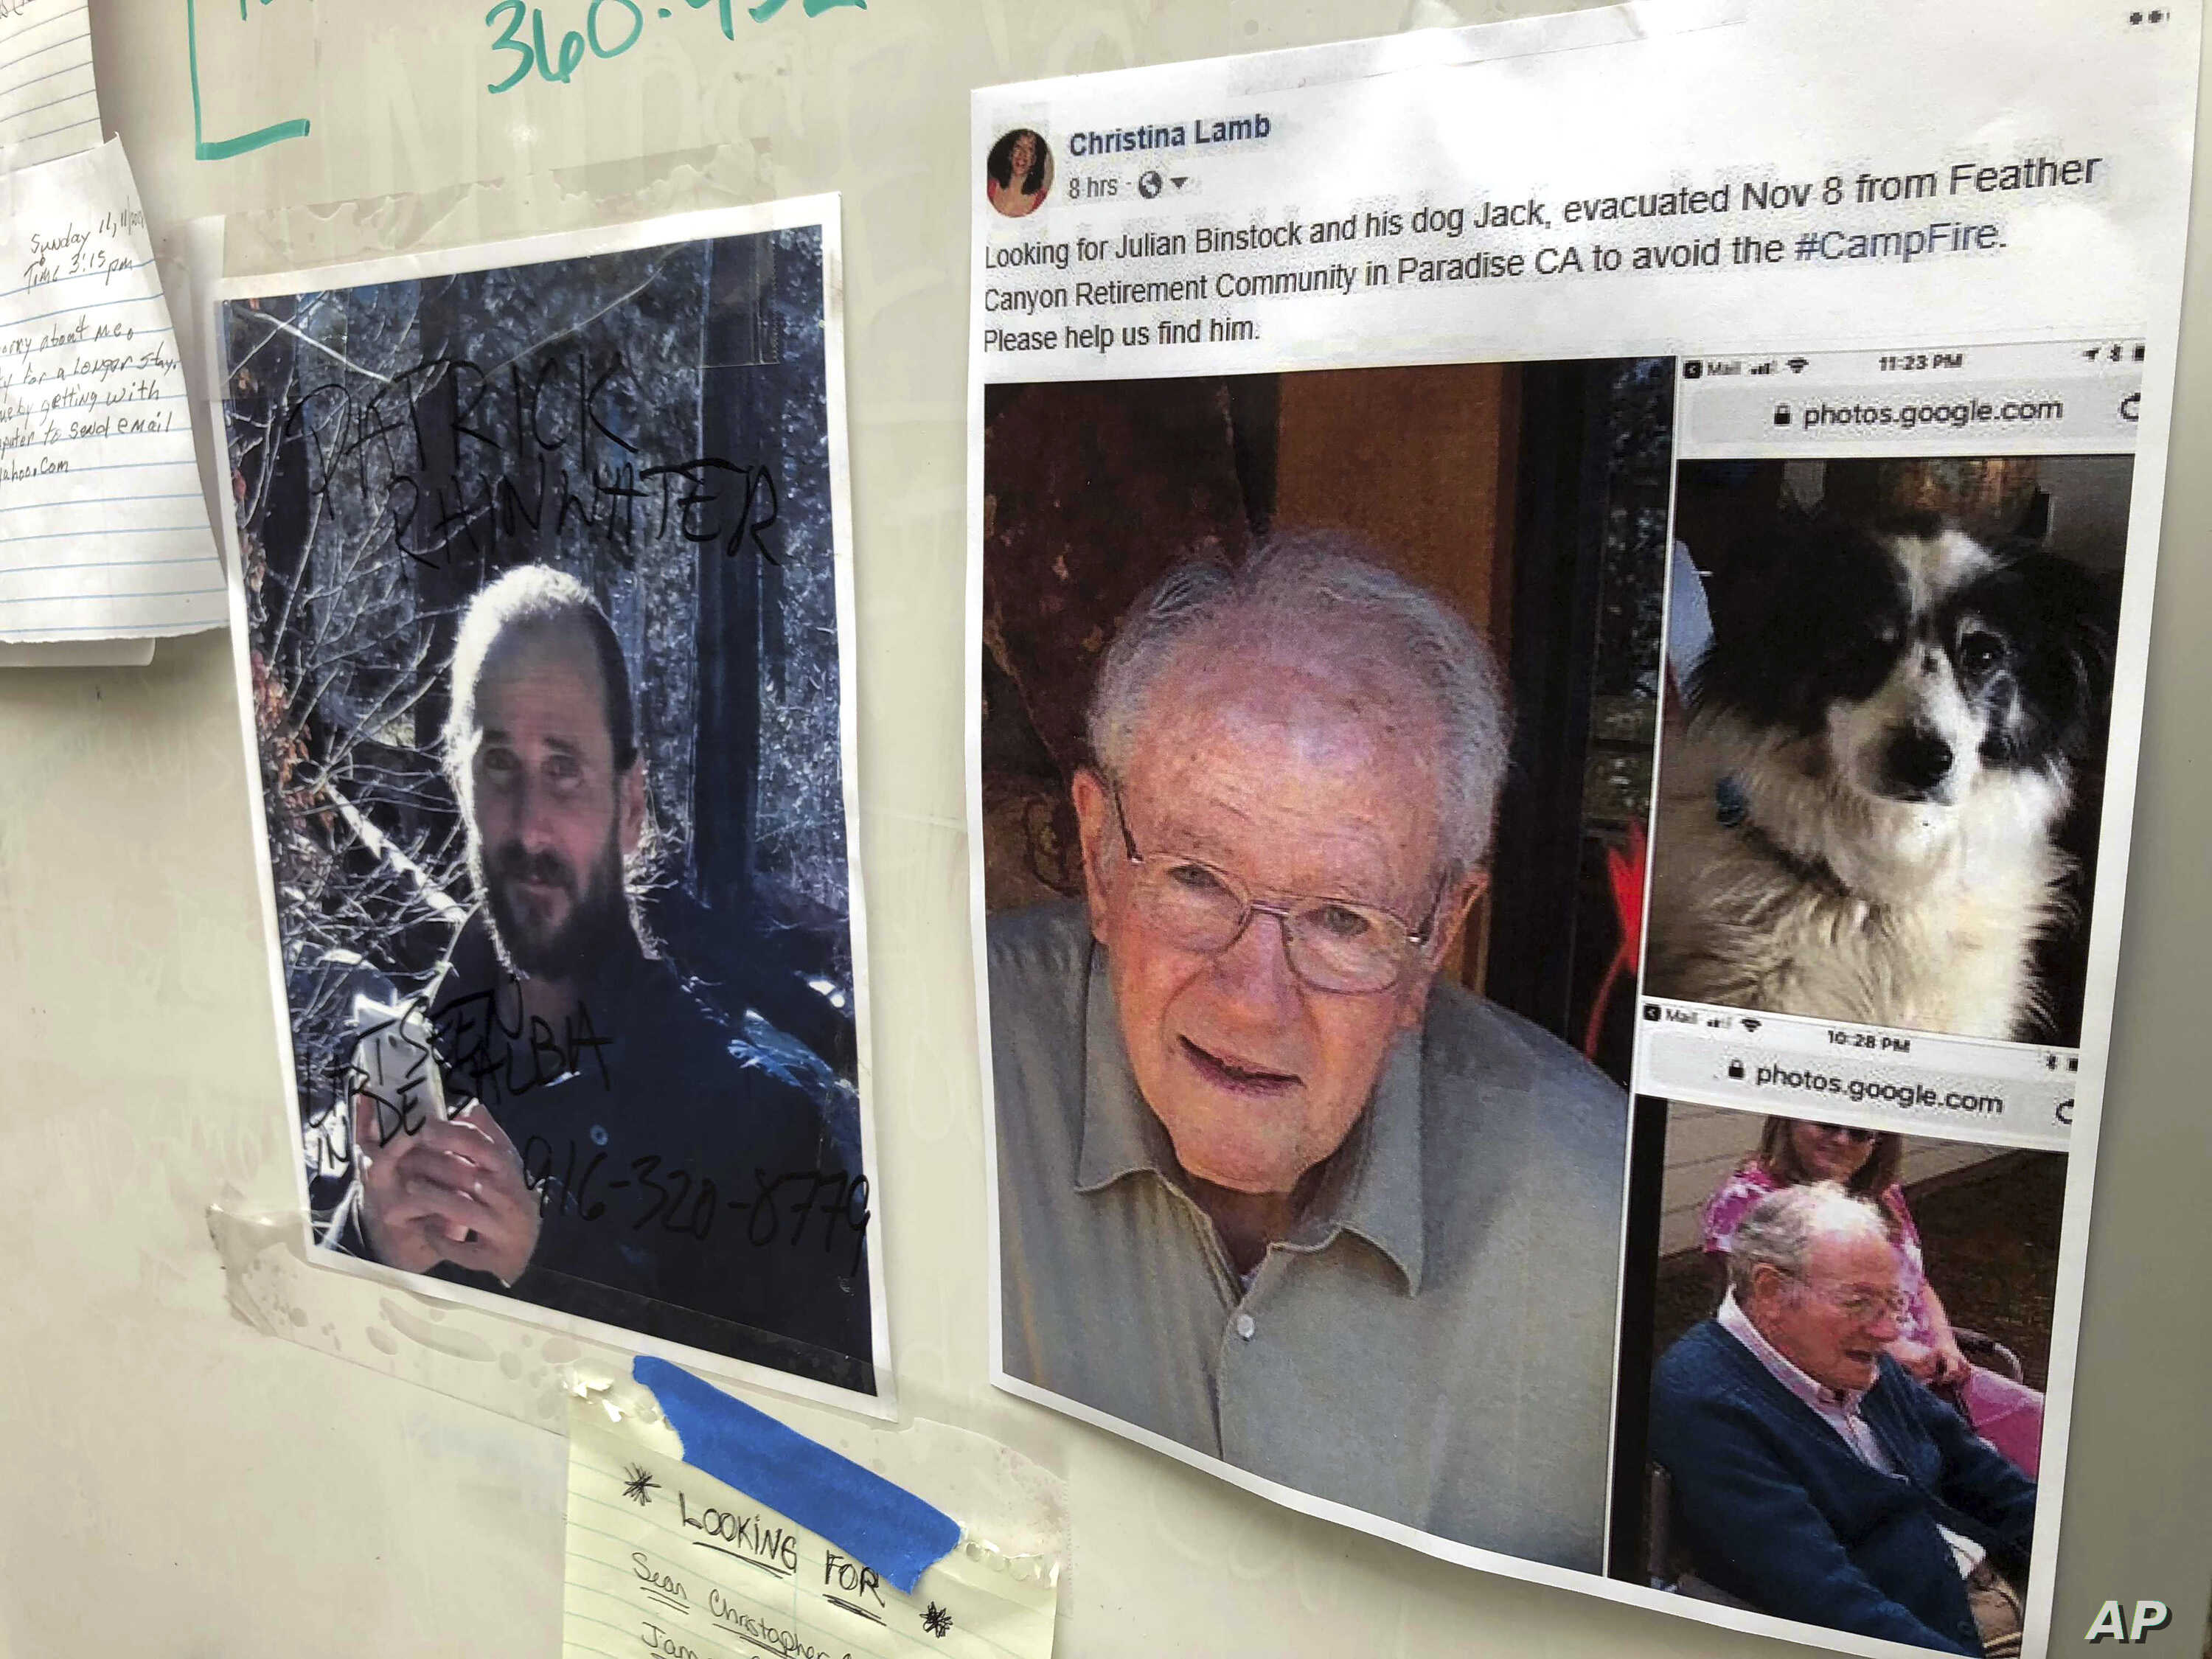 Messages are shown on a bulletin board at The Neighborhood Church in Chico, Calif., on Nov. 13, 2018.